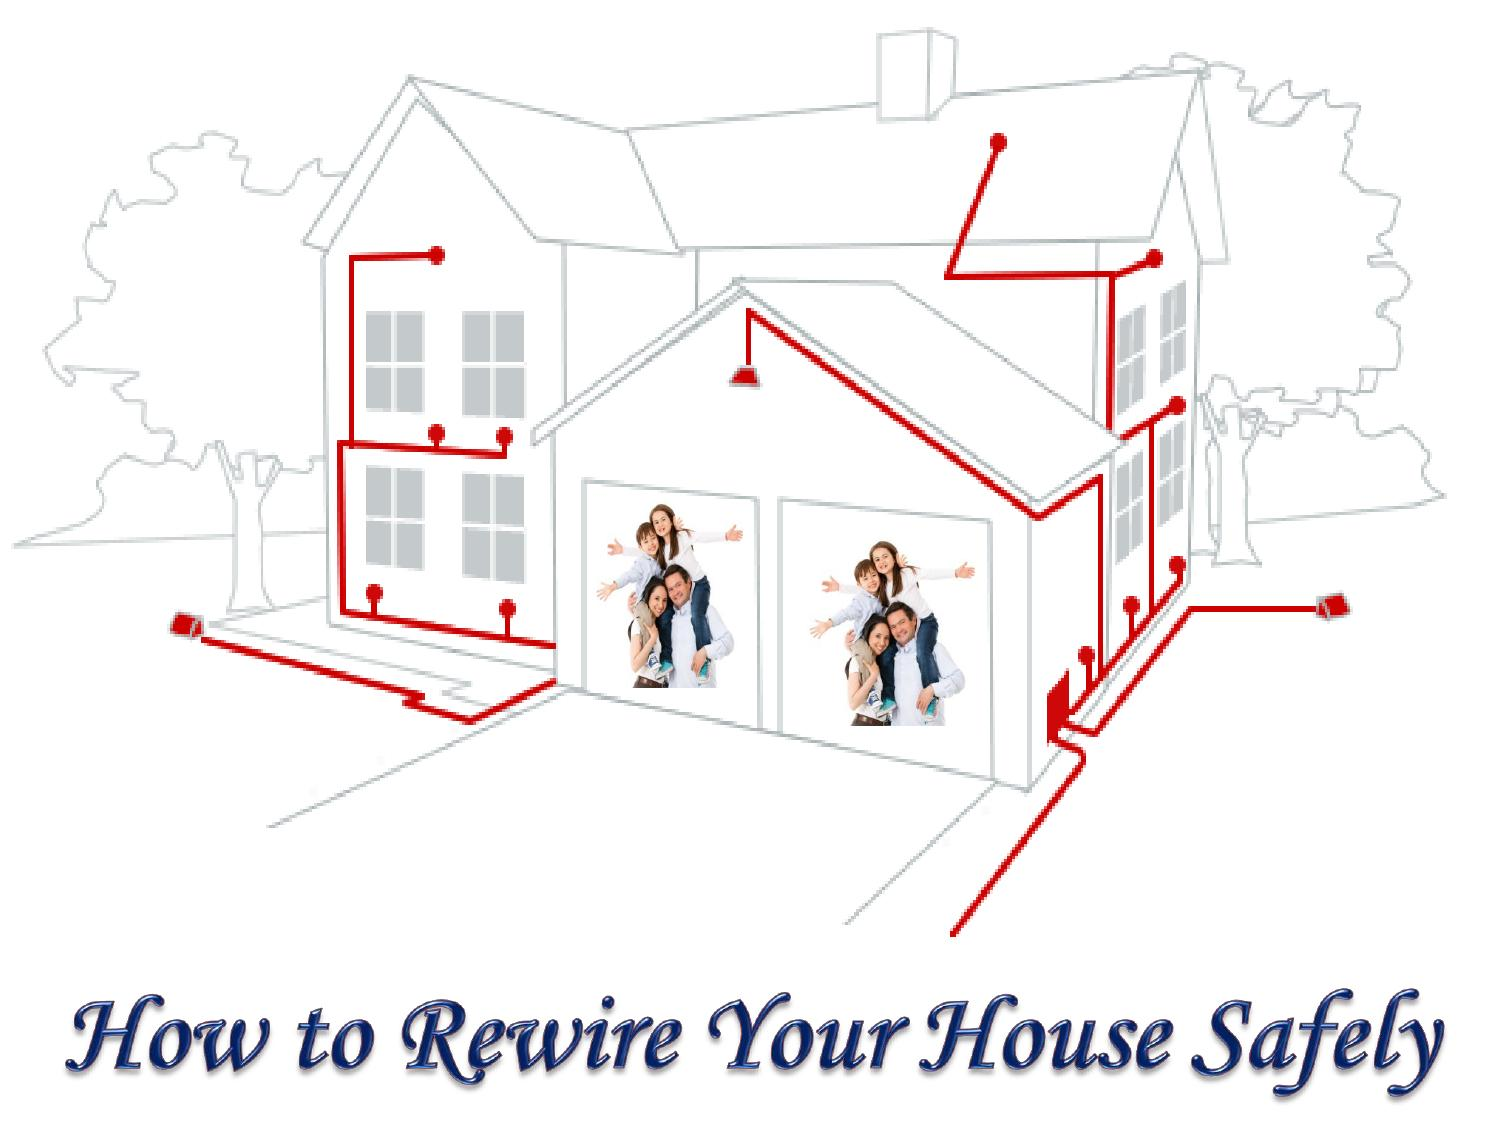 How to rewire your house safely by Md House Rewire Ltd. - issuuIssuu